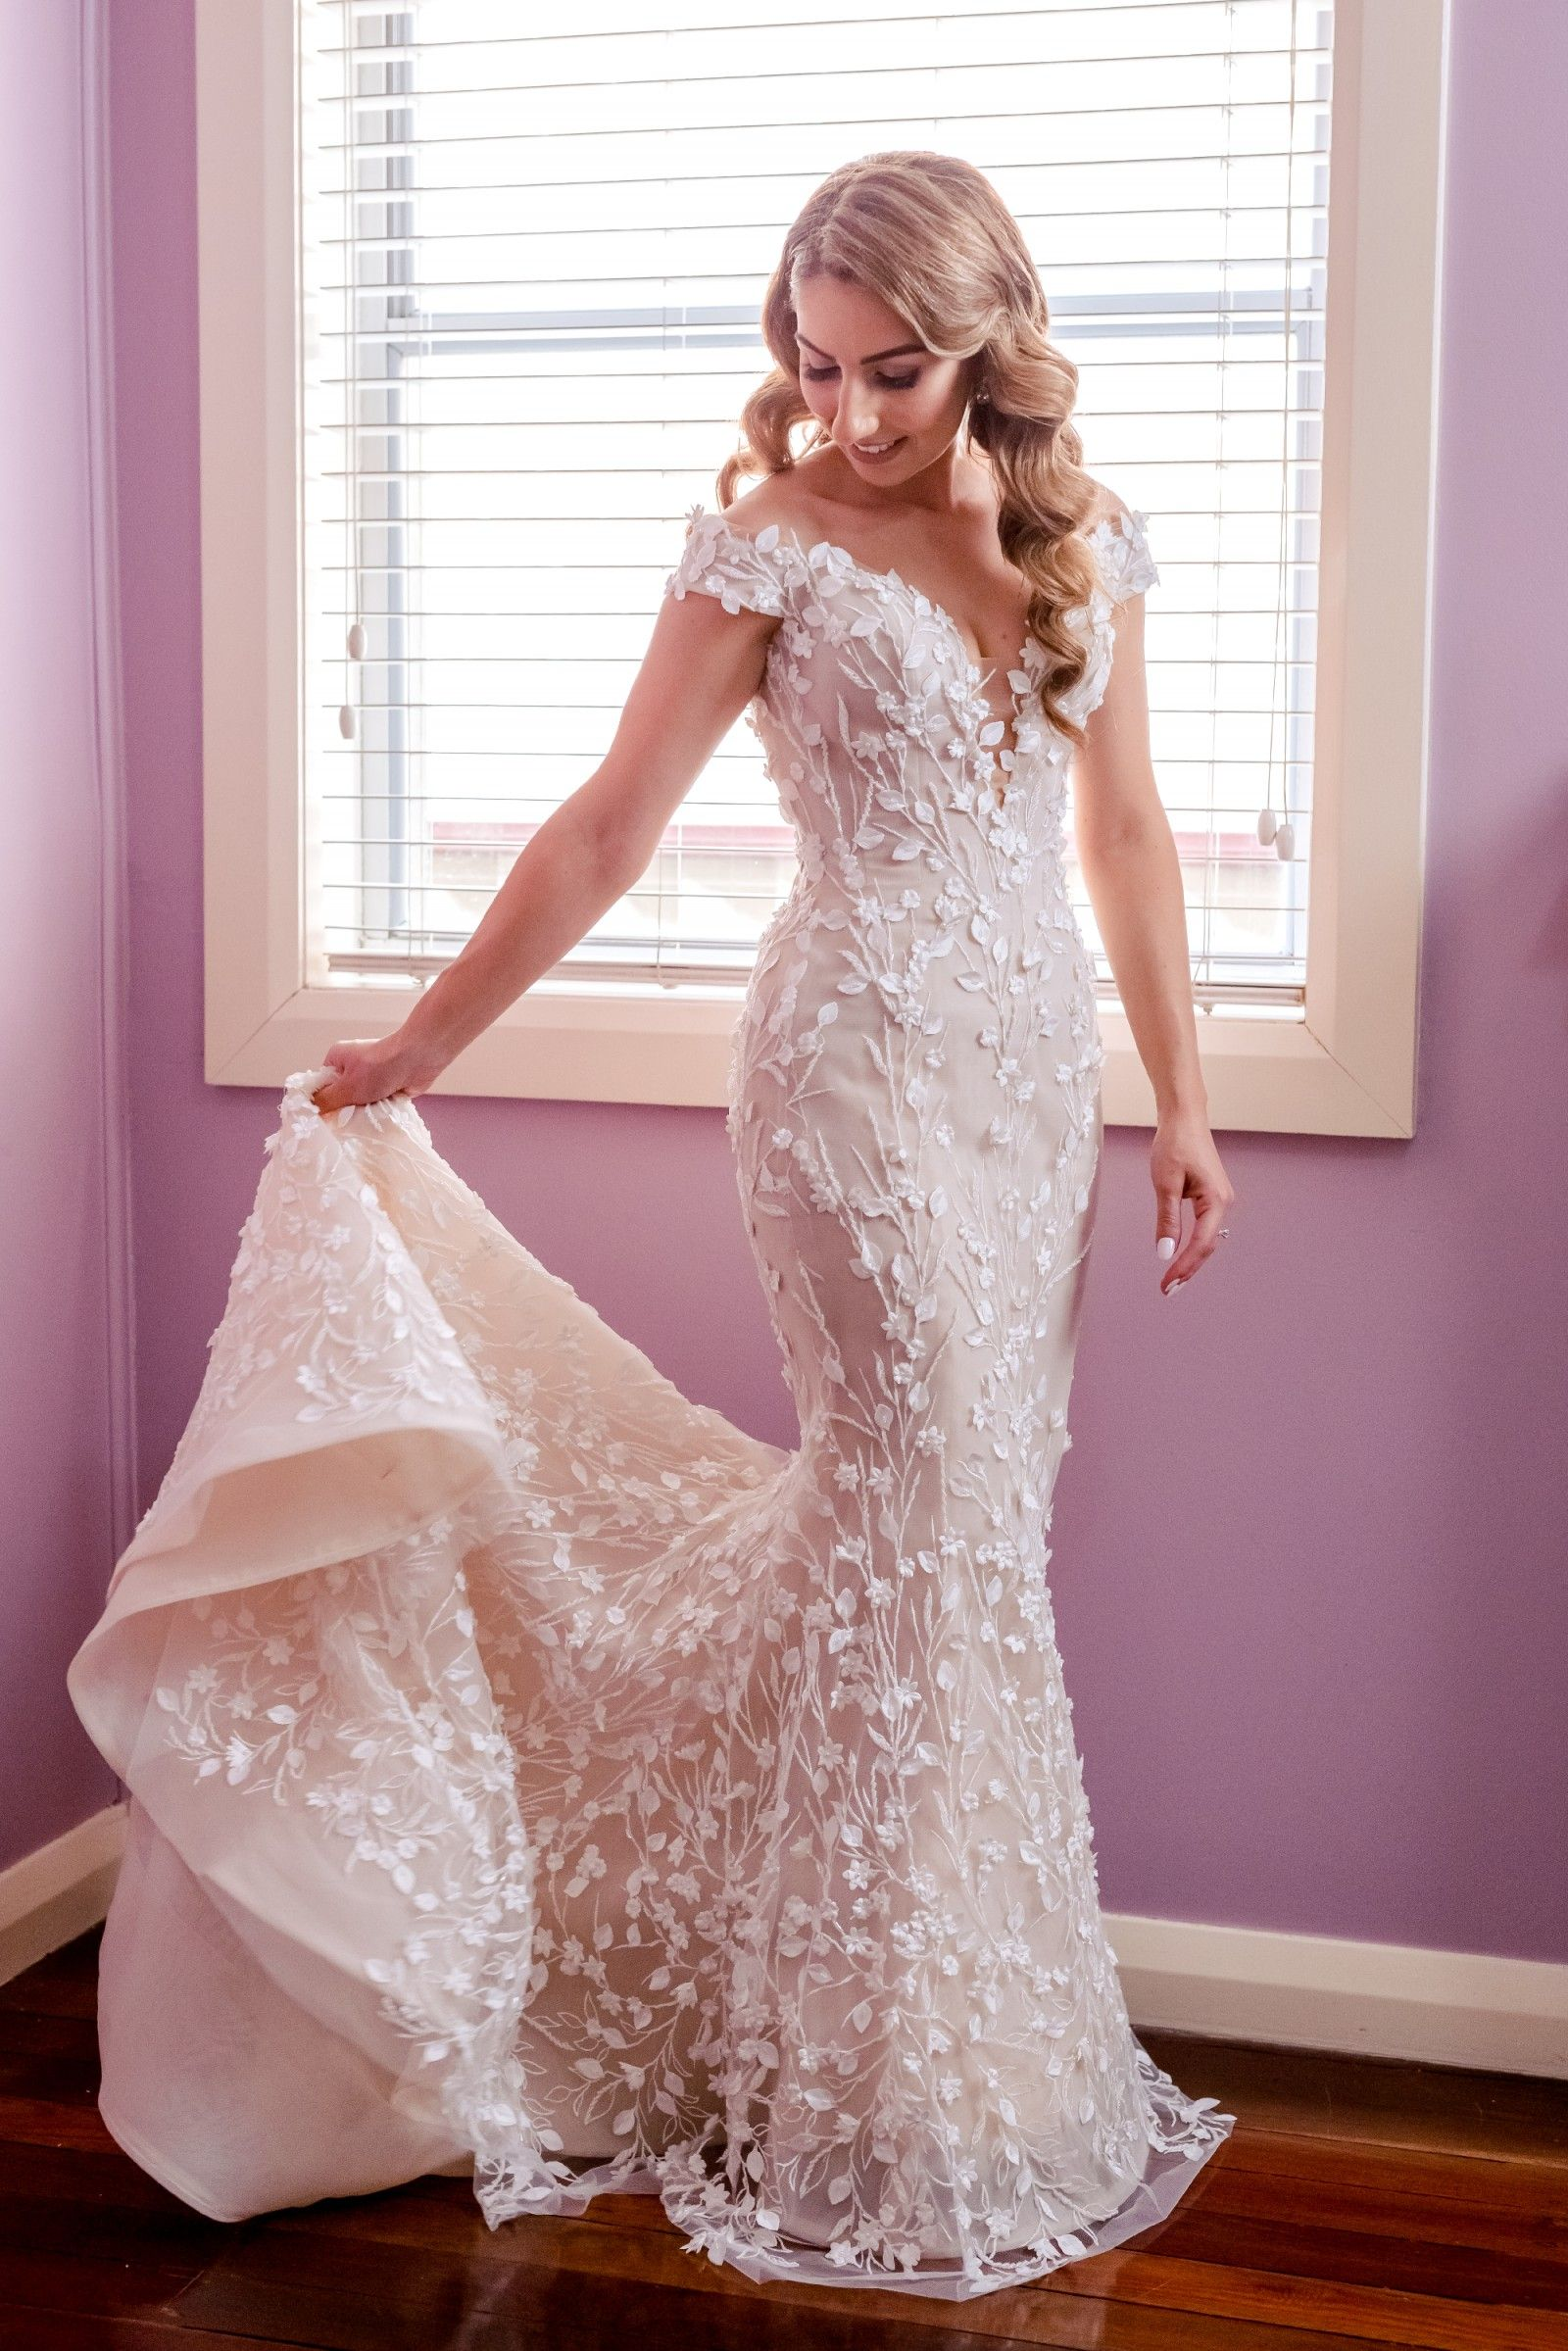 Steven Khalil Custom Made Bridal Gown Used Wedding Dress Save 23 In 2020 Wedding Dresses Bridal Gowns Bridal Gown Fitting